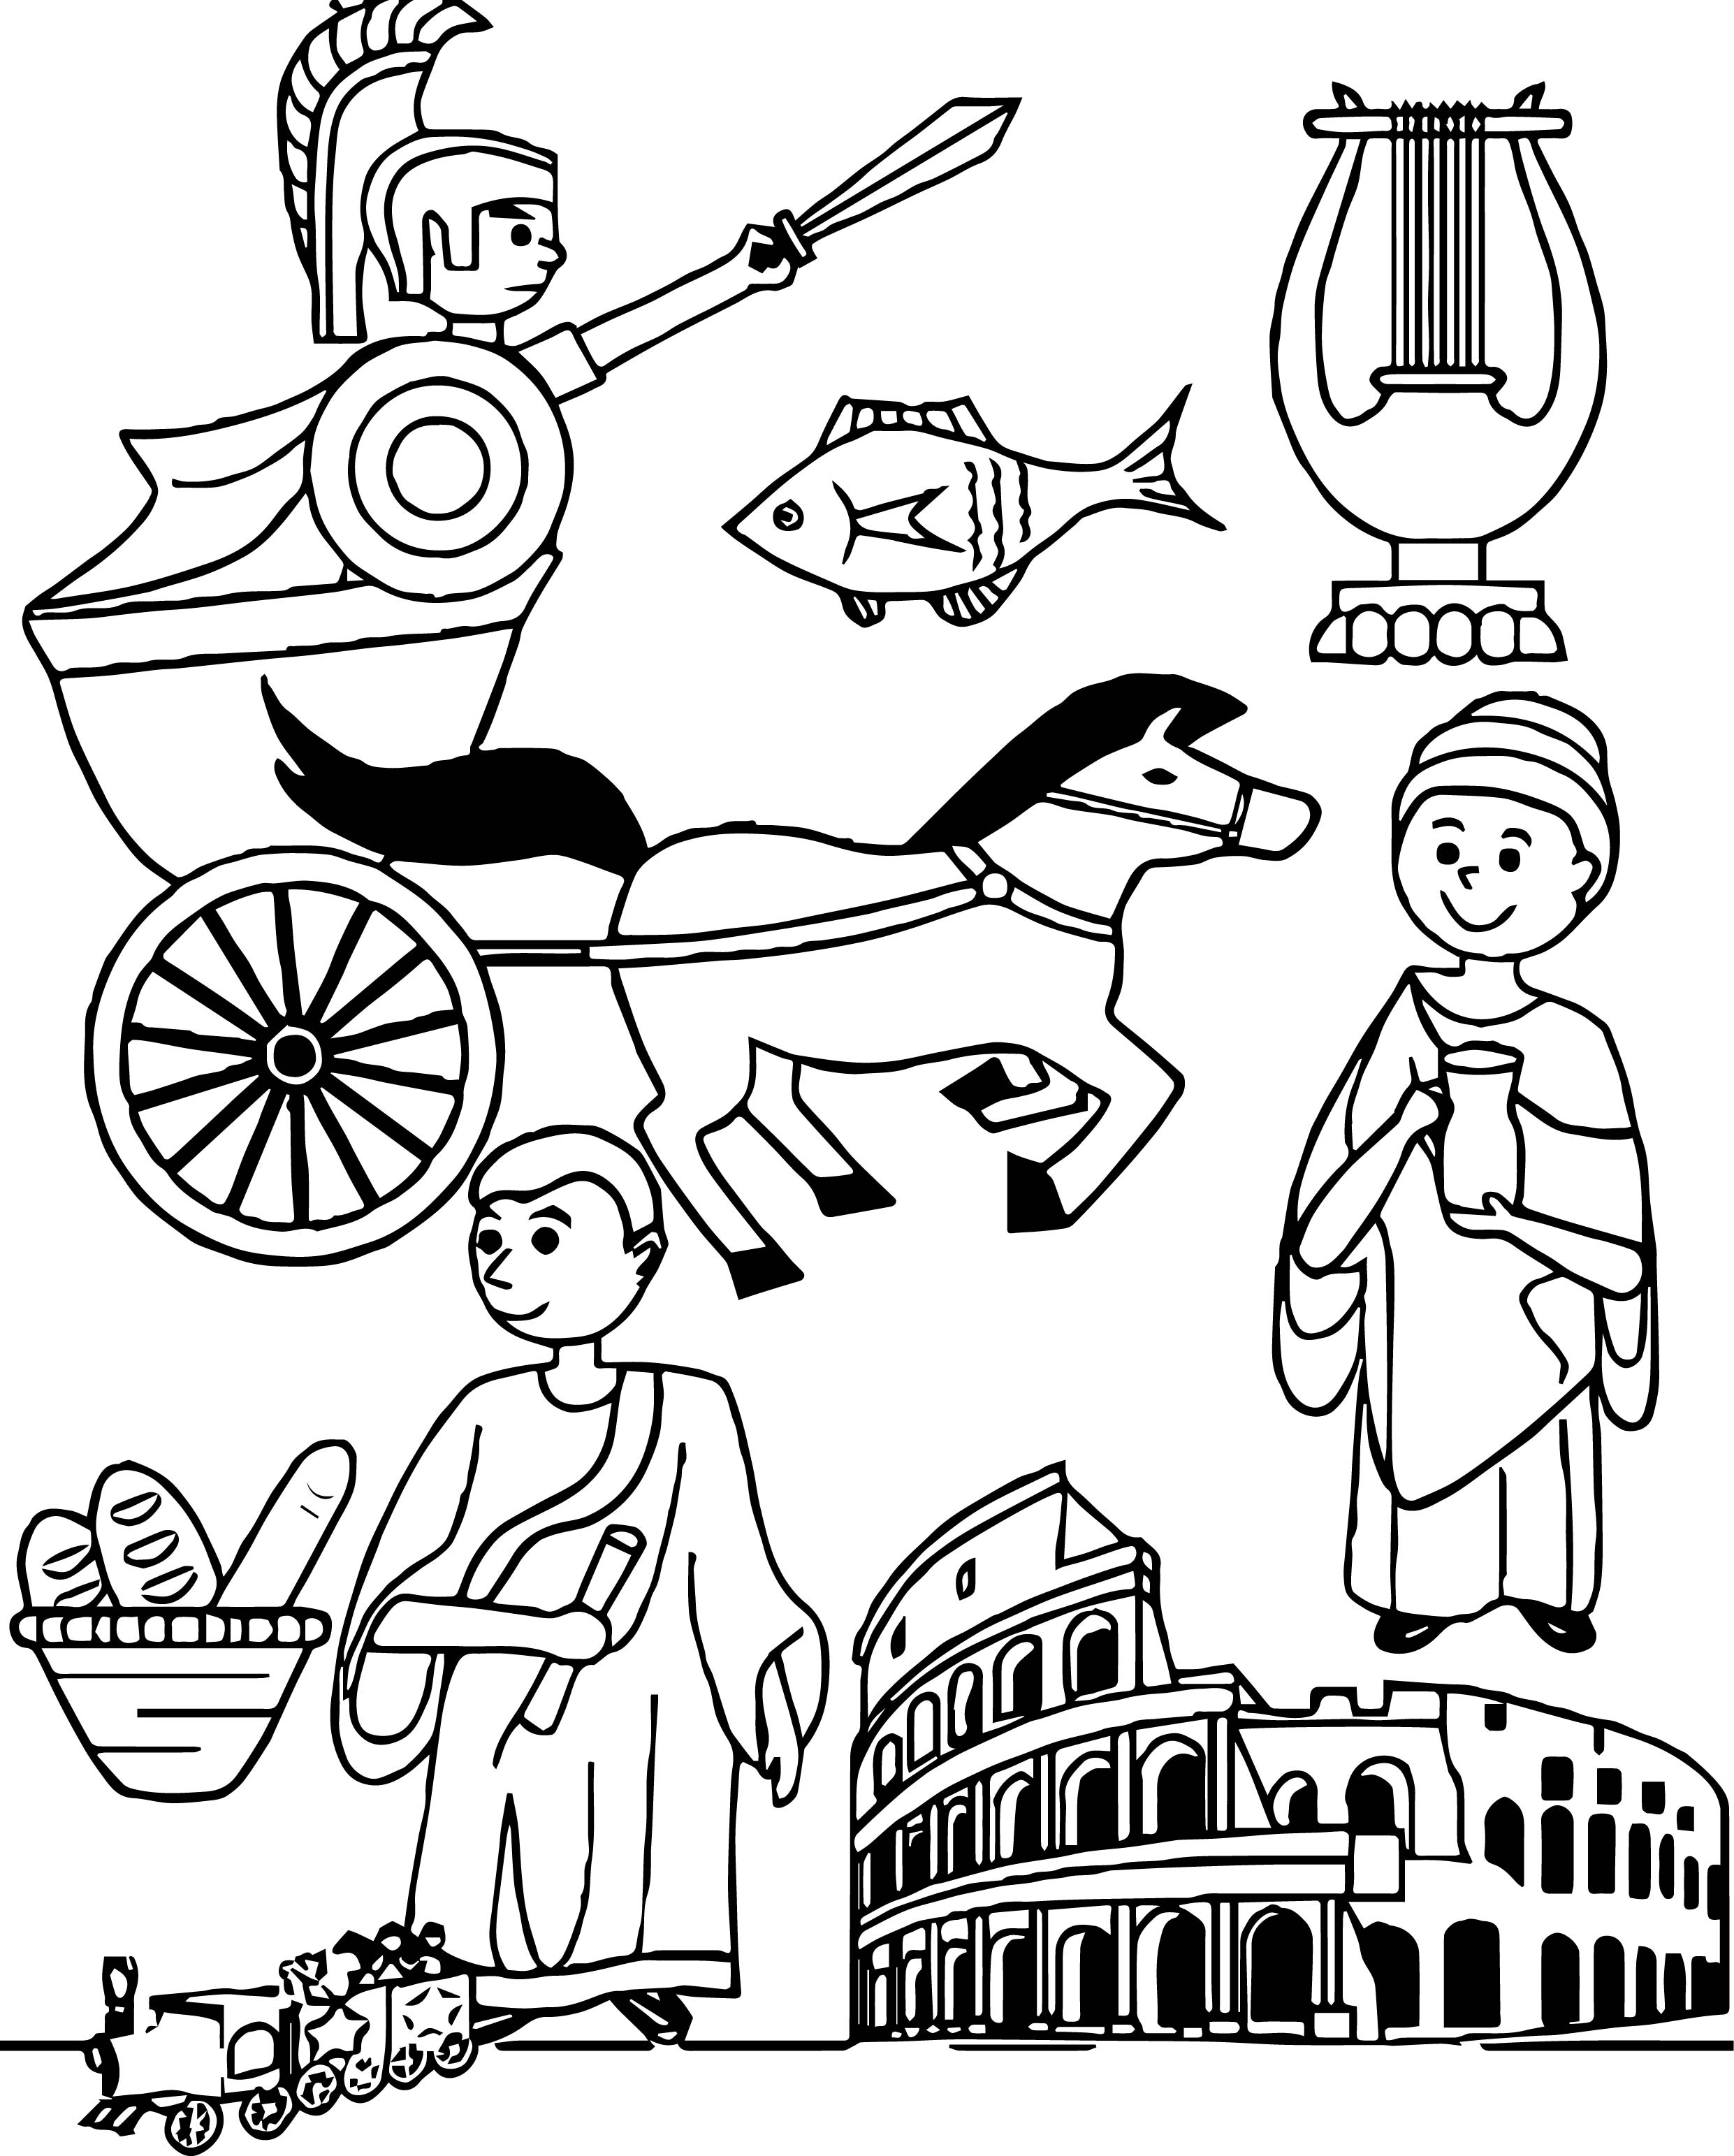 HD wallpapers ancient rome coloring pages designcloveghd.gq